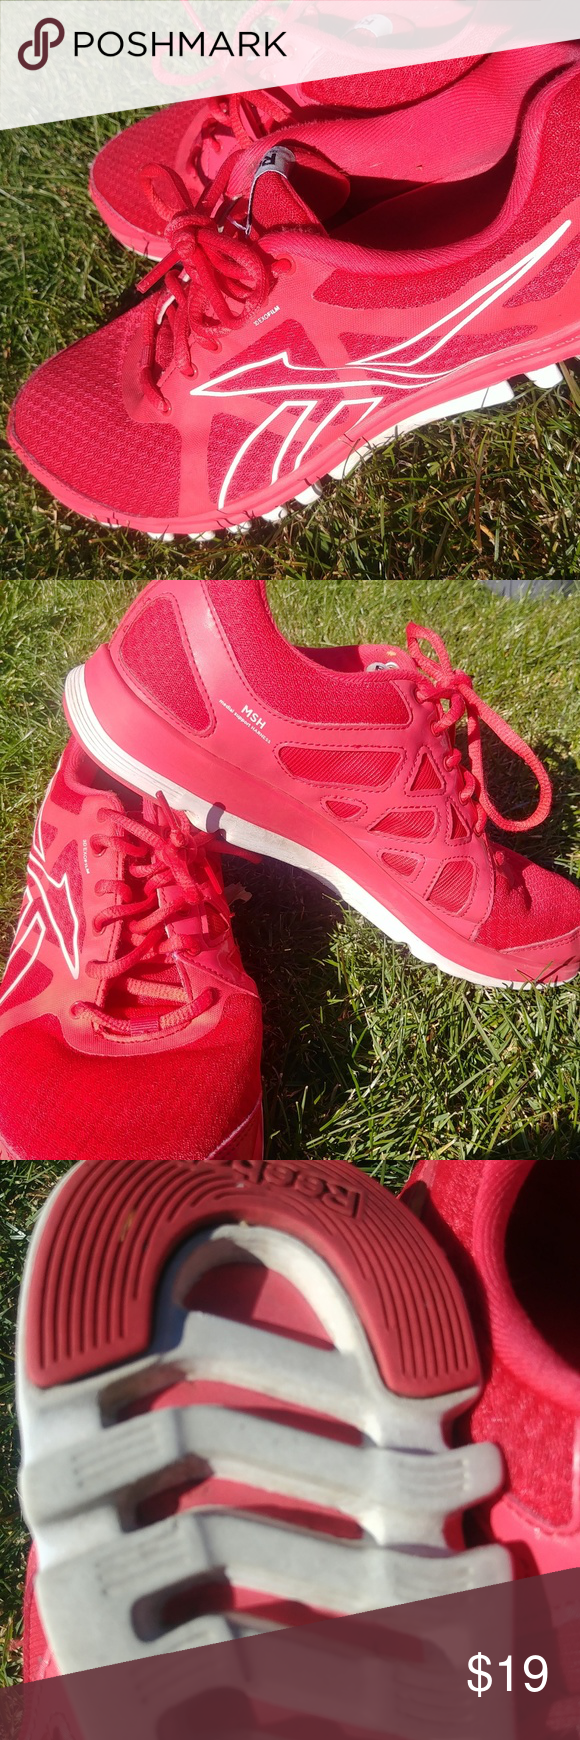 9.5 Reebok Running Shoes💪 | Shoes